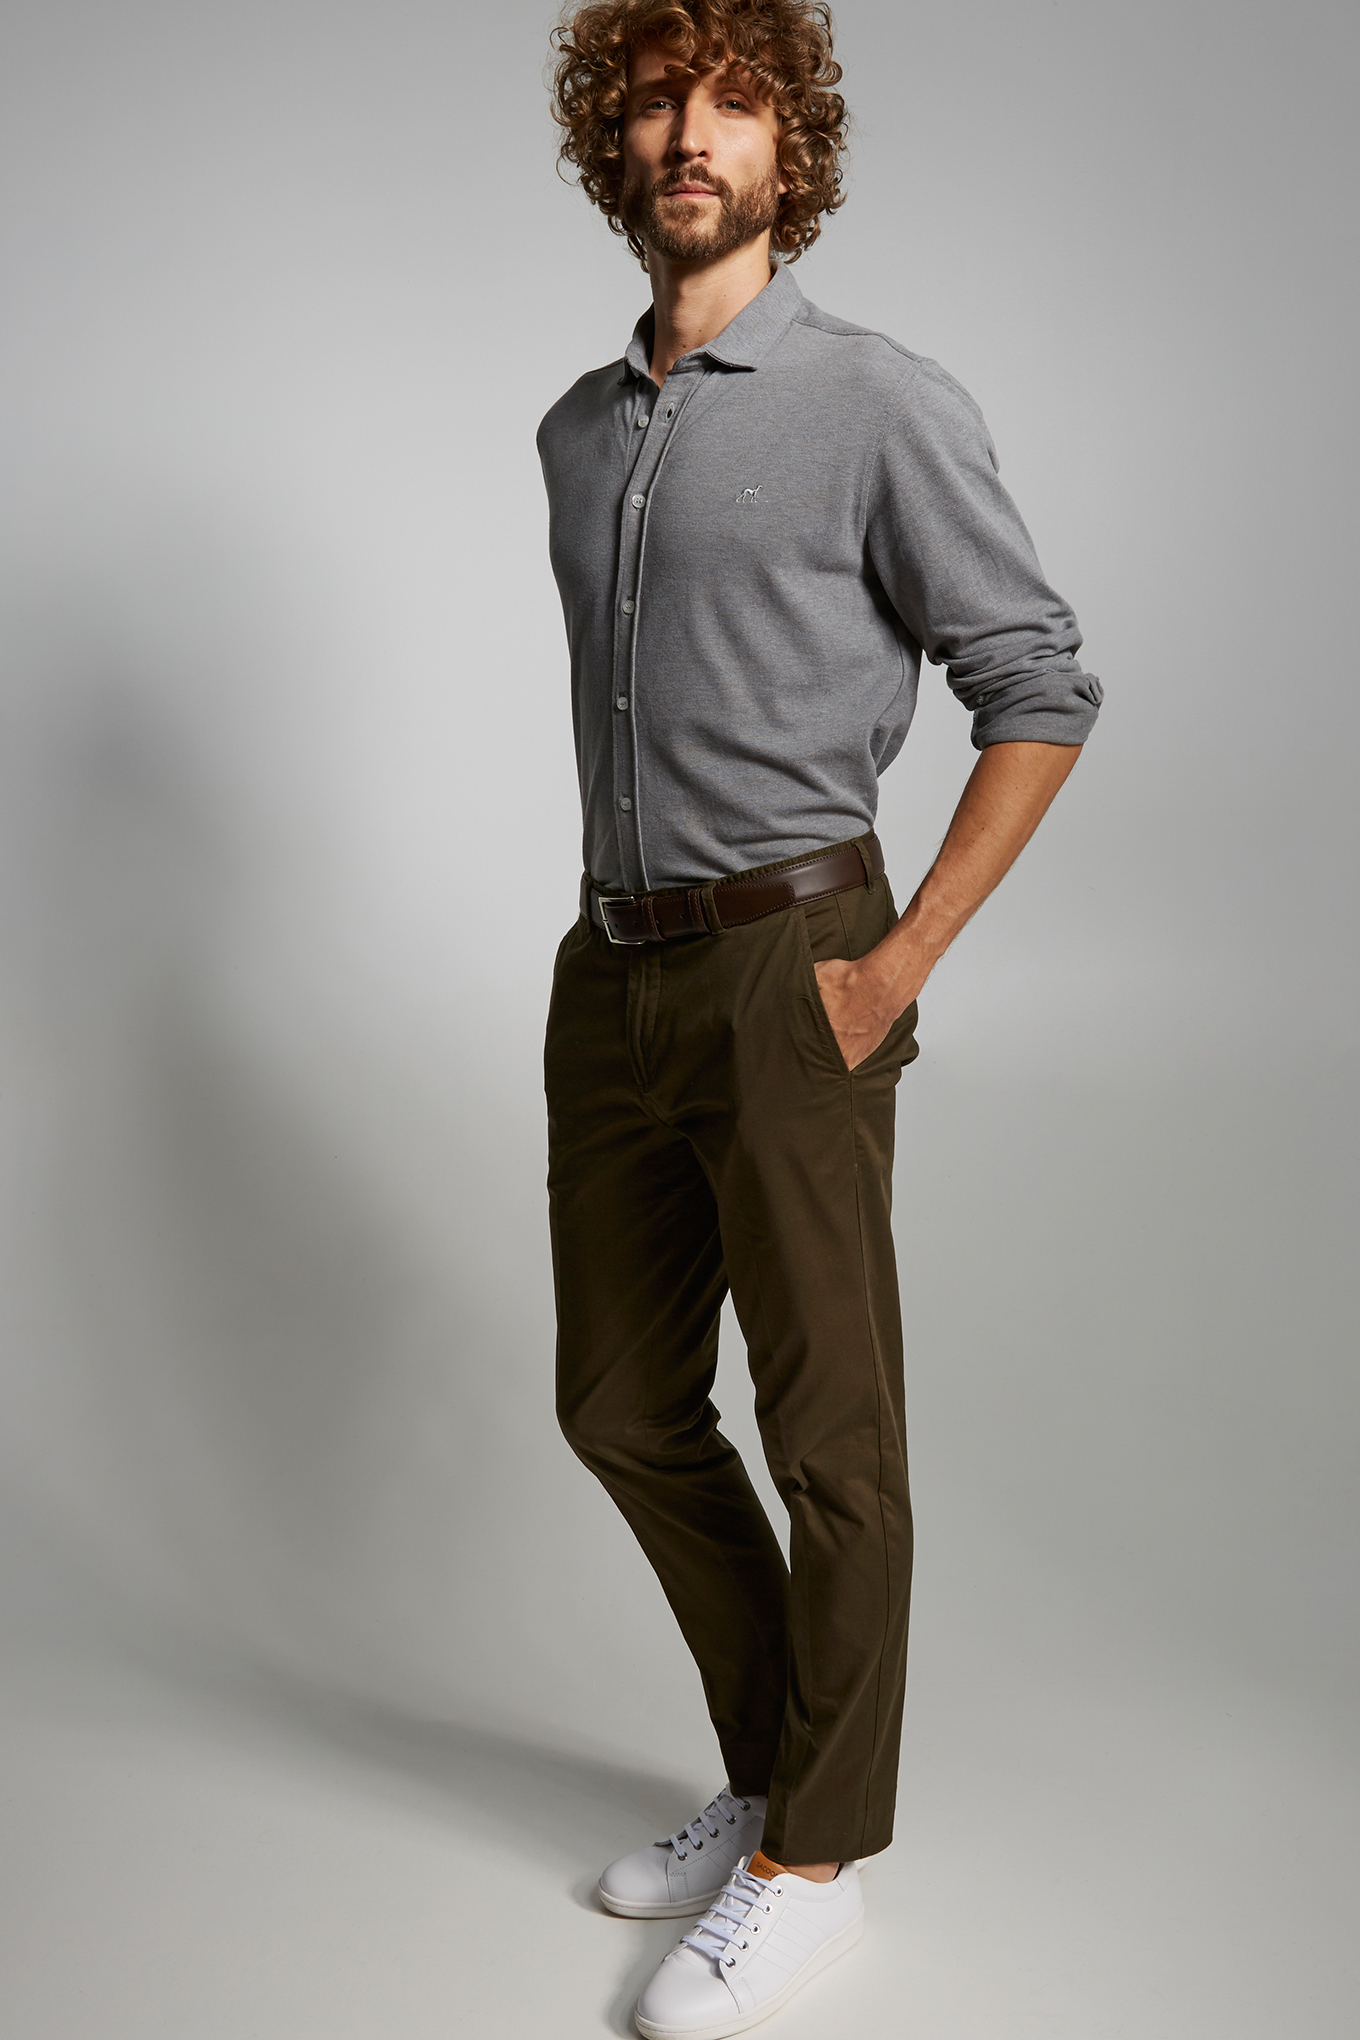 Chino Trousers Khaki Casual Man